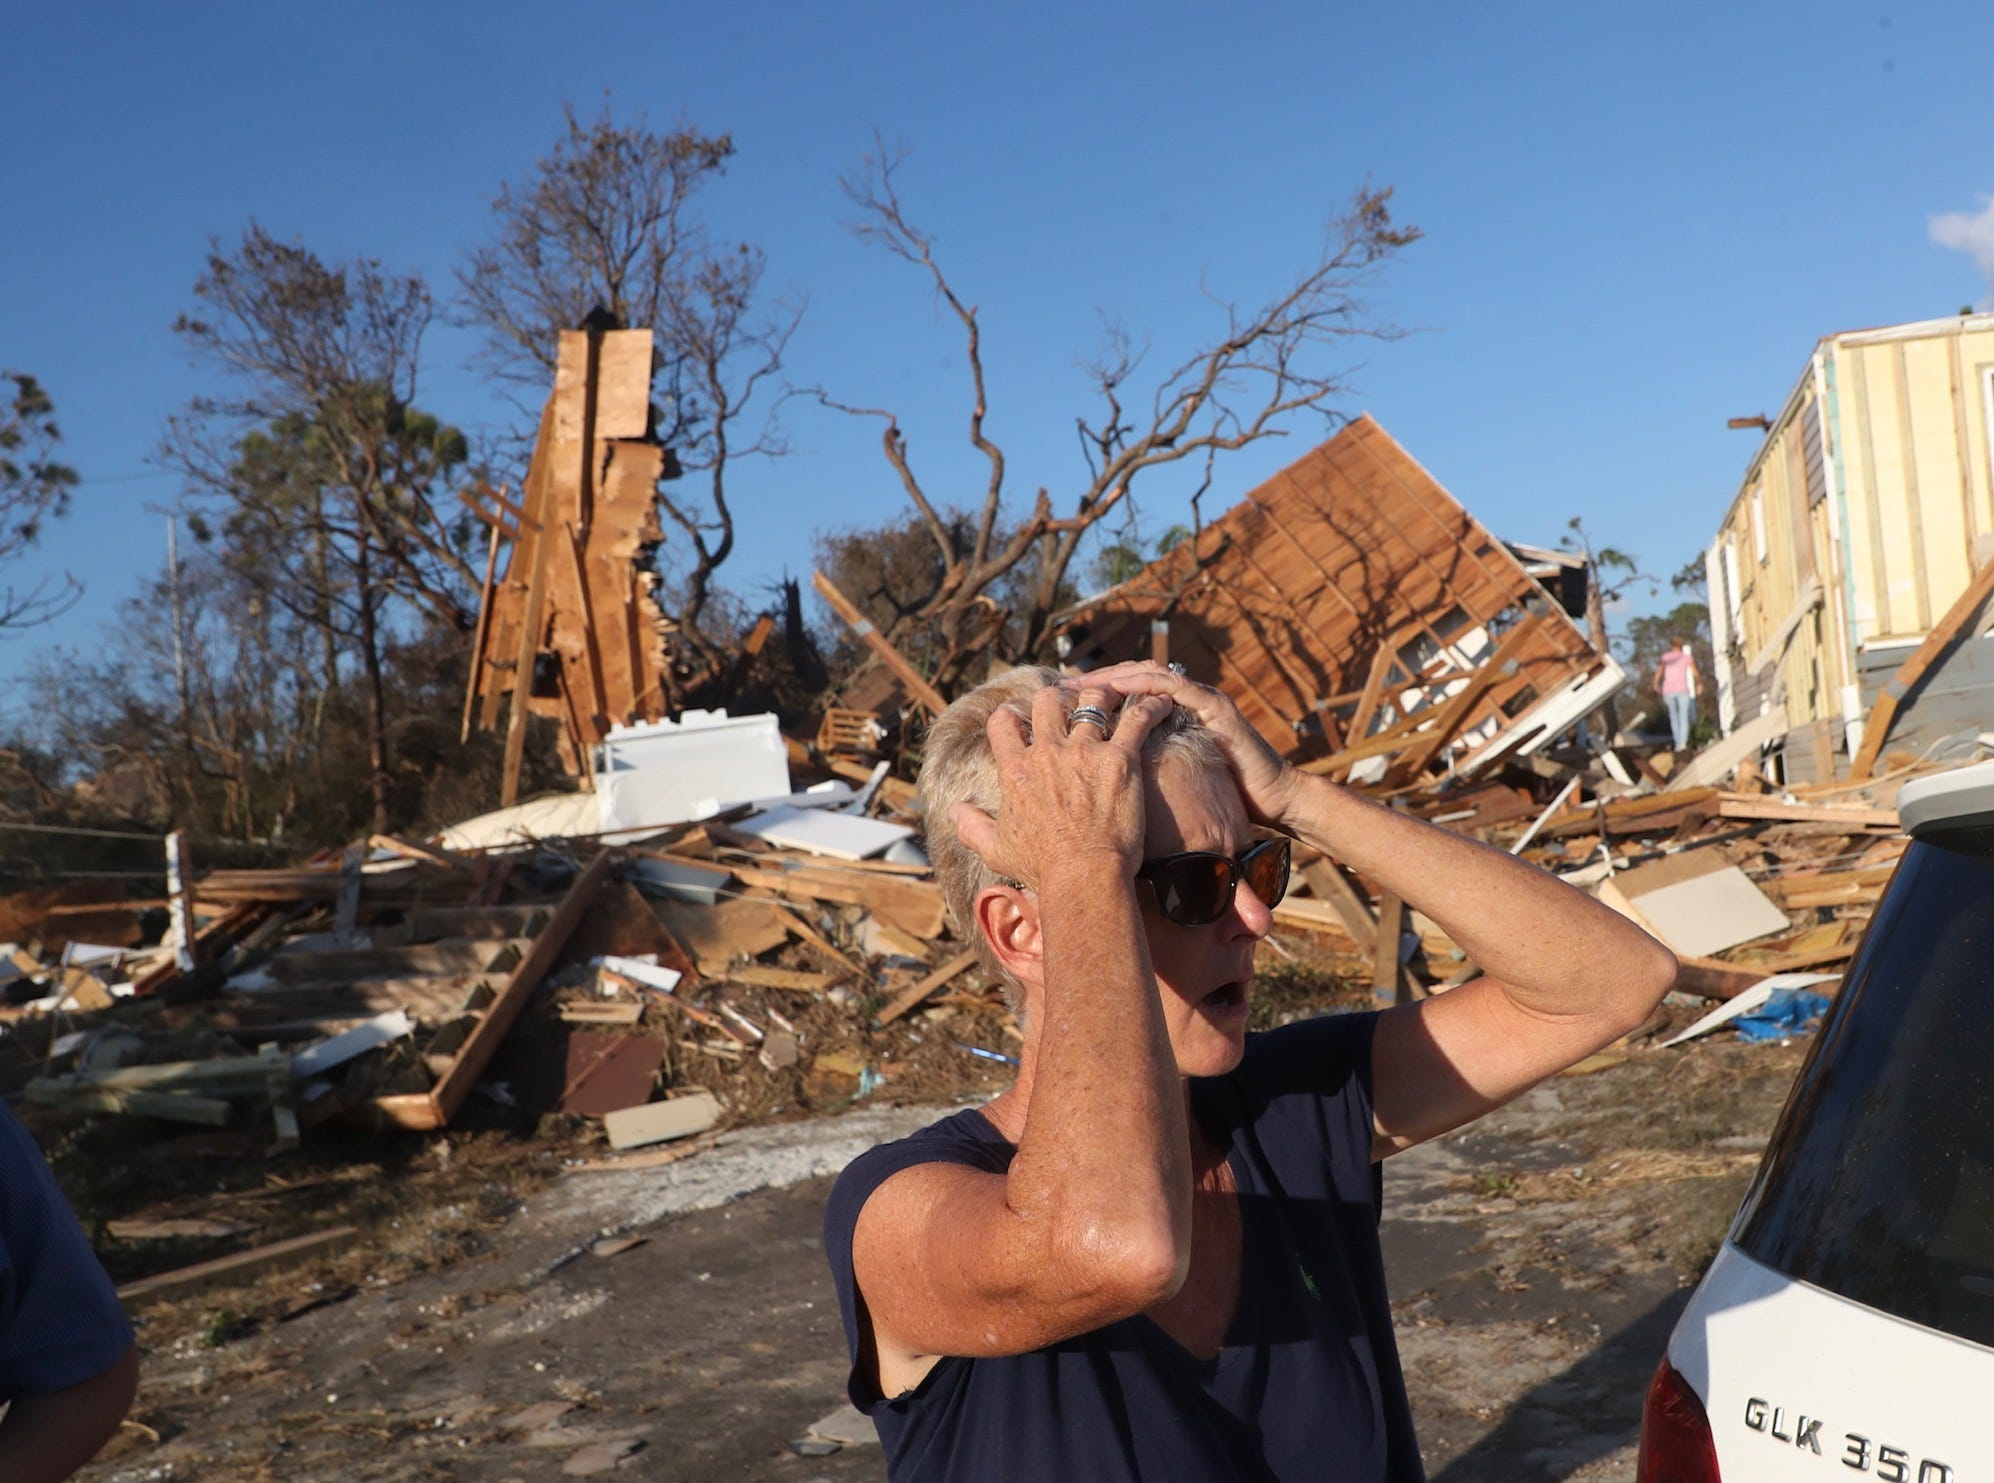 Becky Daniel reacts to seeing her Beacon Hill home, behind her, on Oct. 11, 2018. It was destroyed in Hurricane Michael. The area is right next to Mexico City, Fla. which was ground zero for the hurricane.